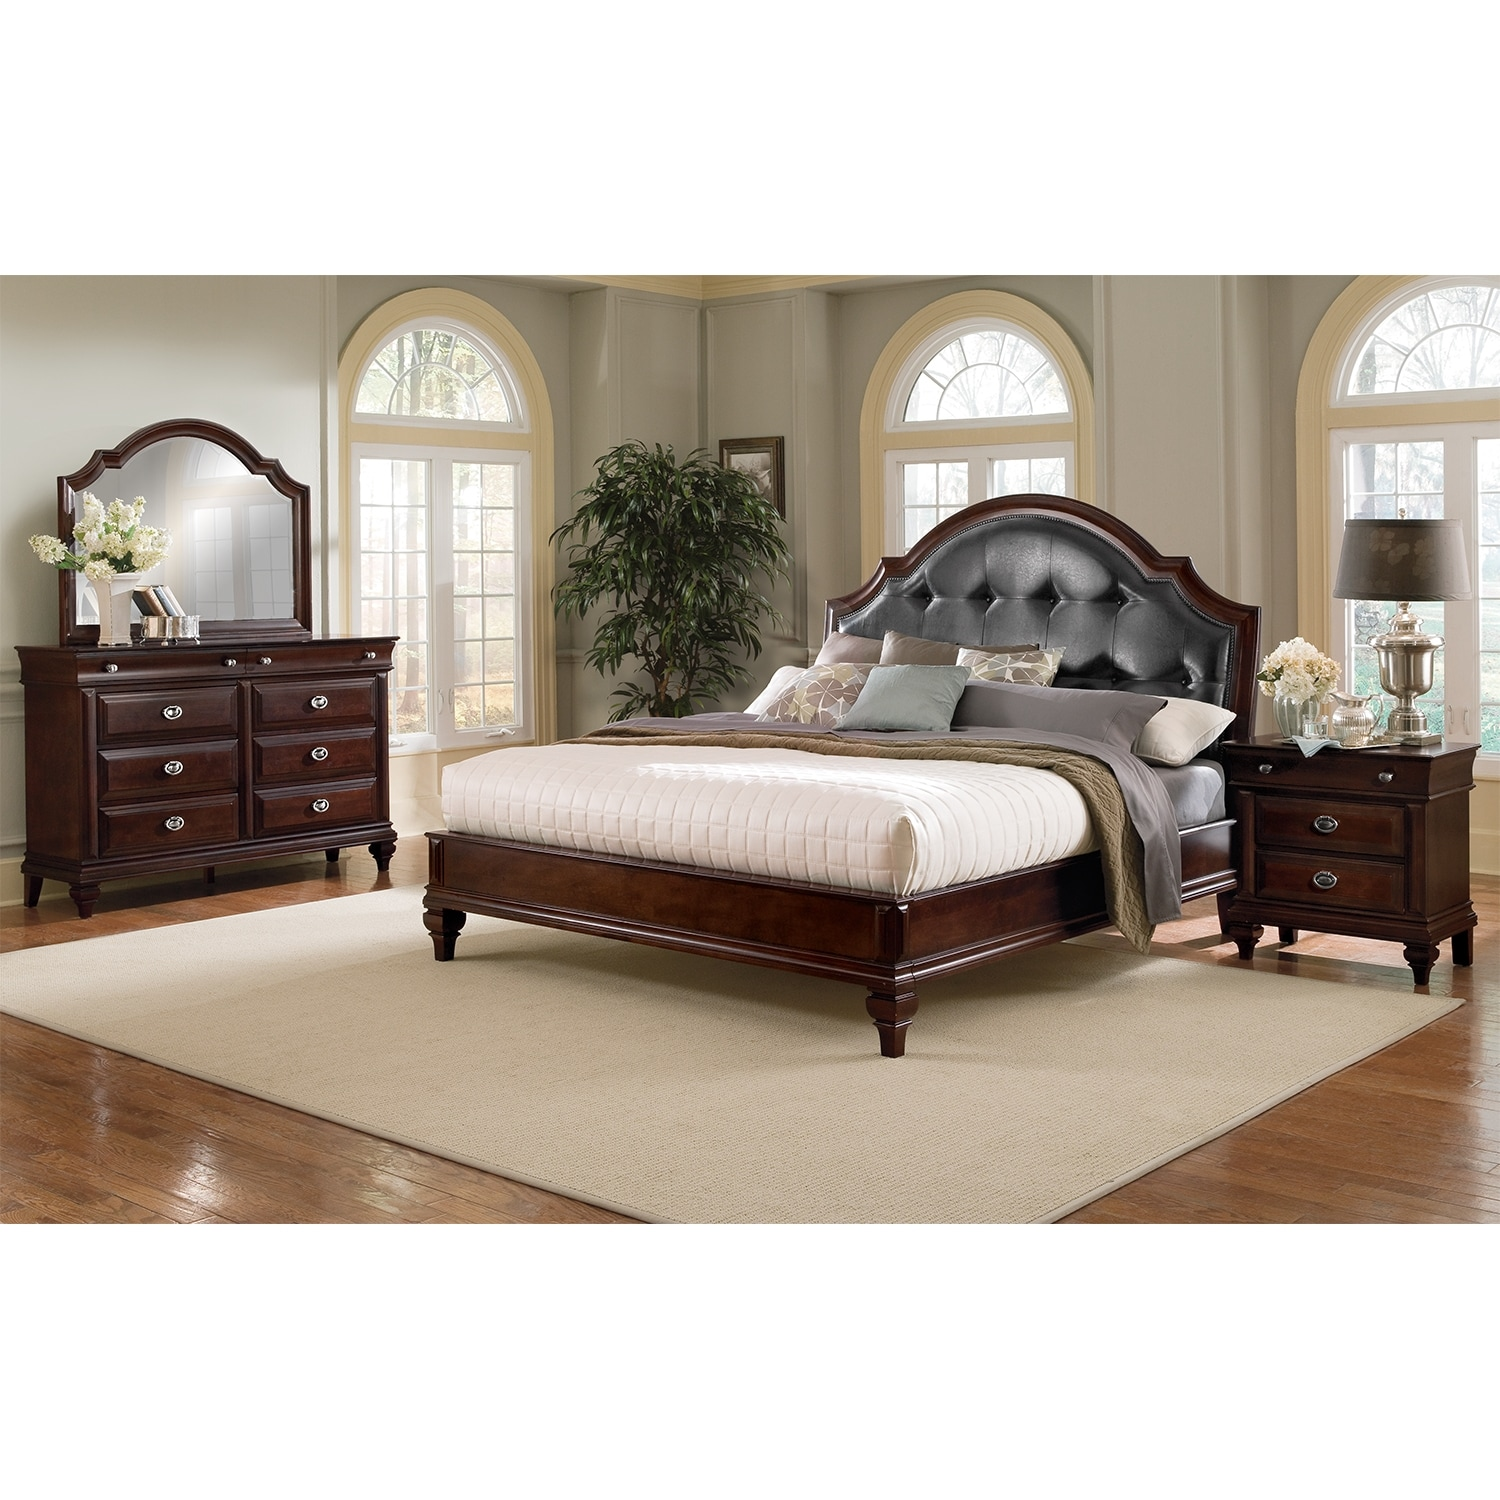 manhattan 6 piece king bedroom set cherry american signature furniture. Black Bedroom Furniture Sets. Home Design Ideas